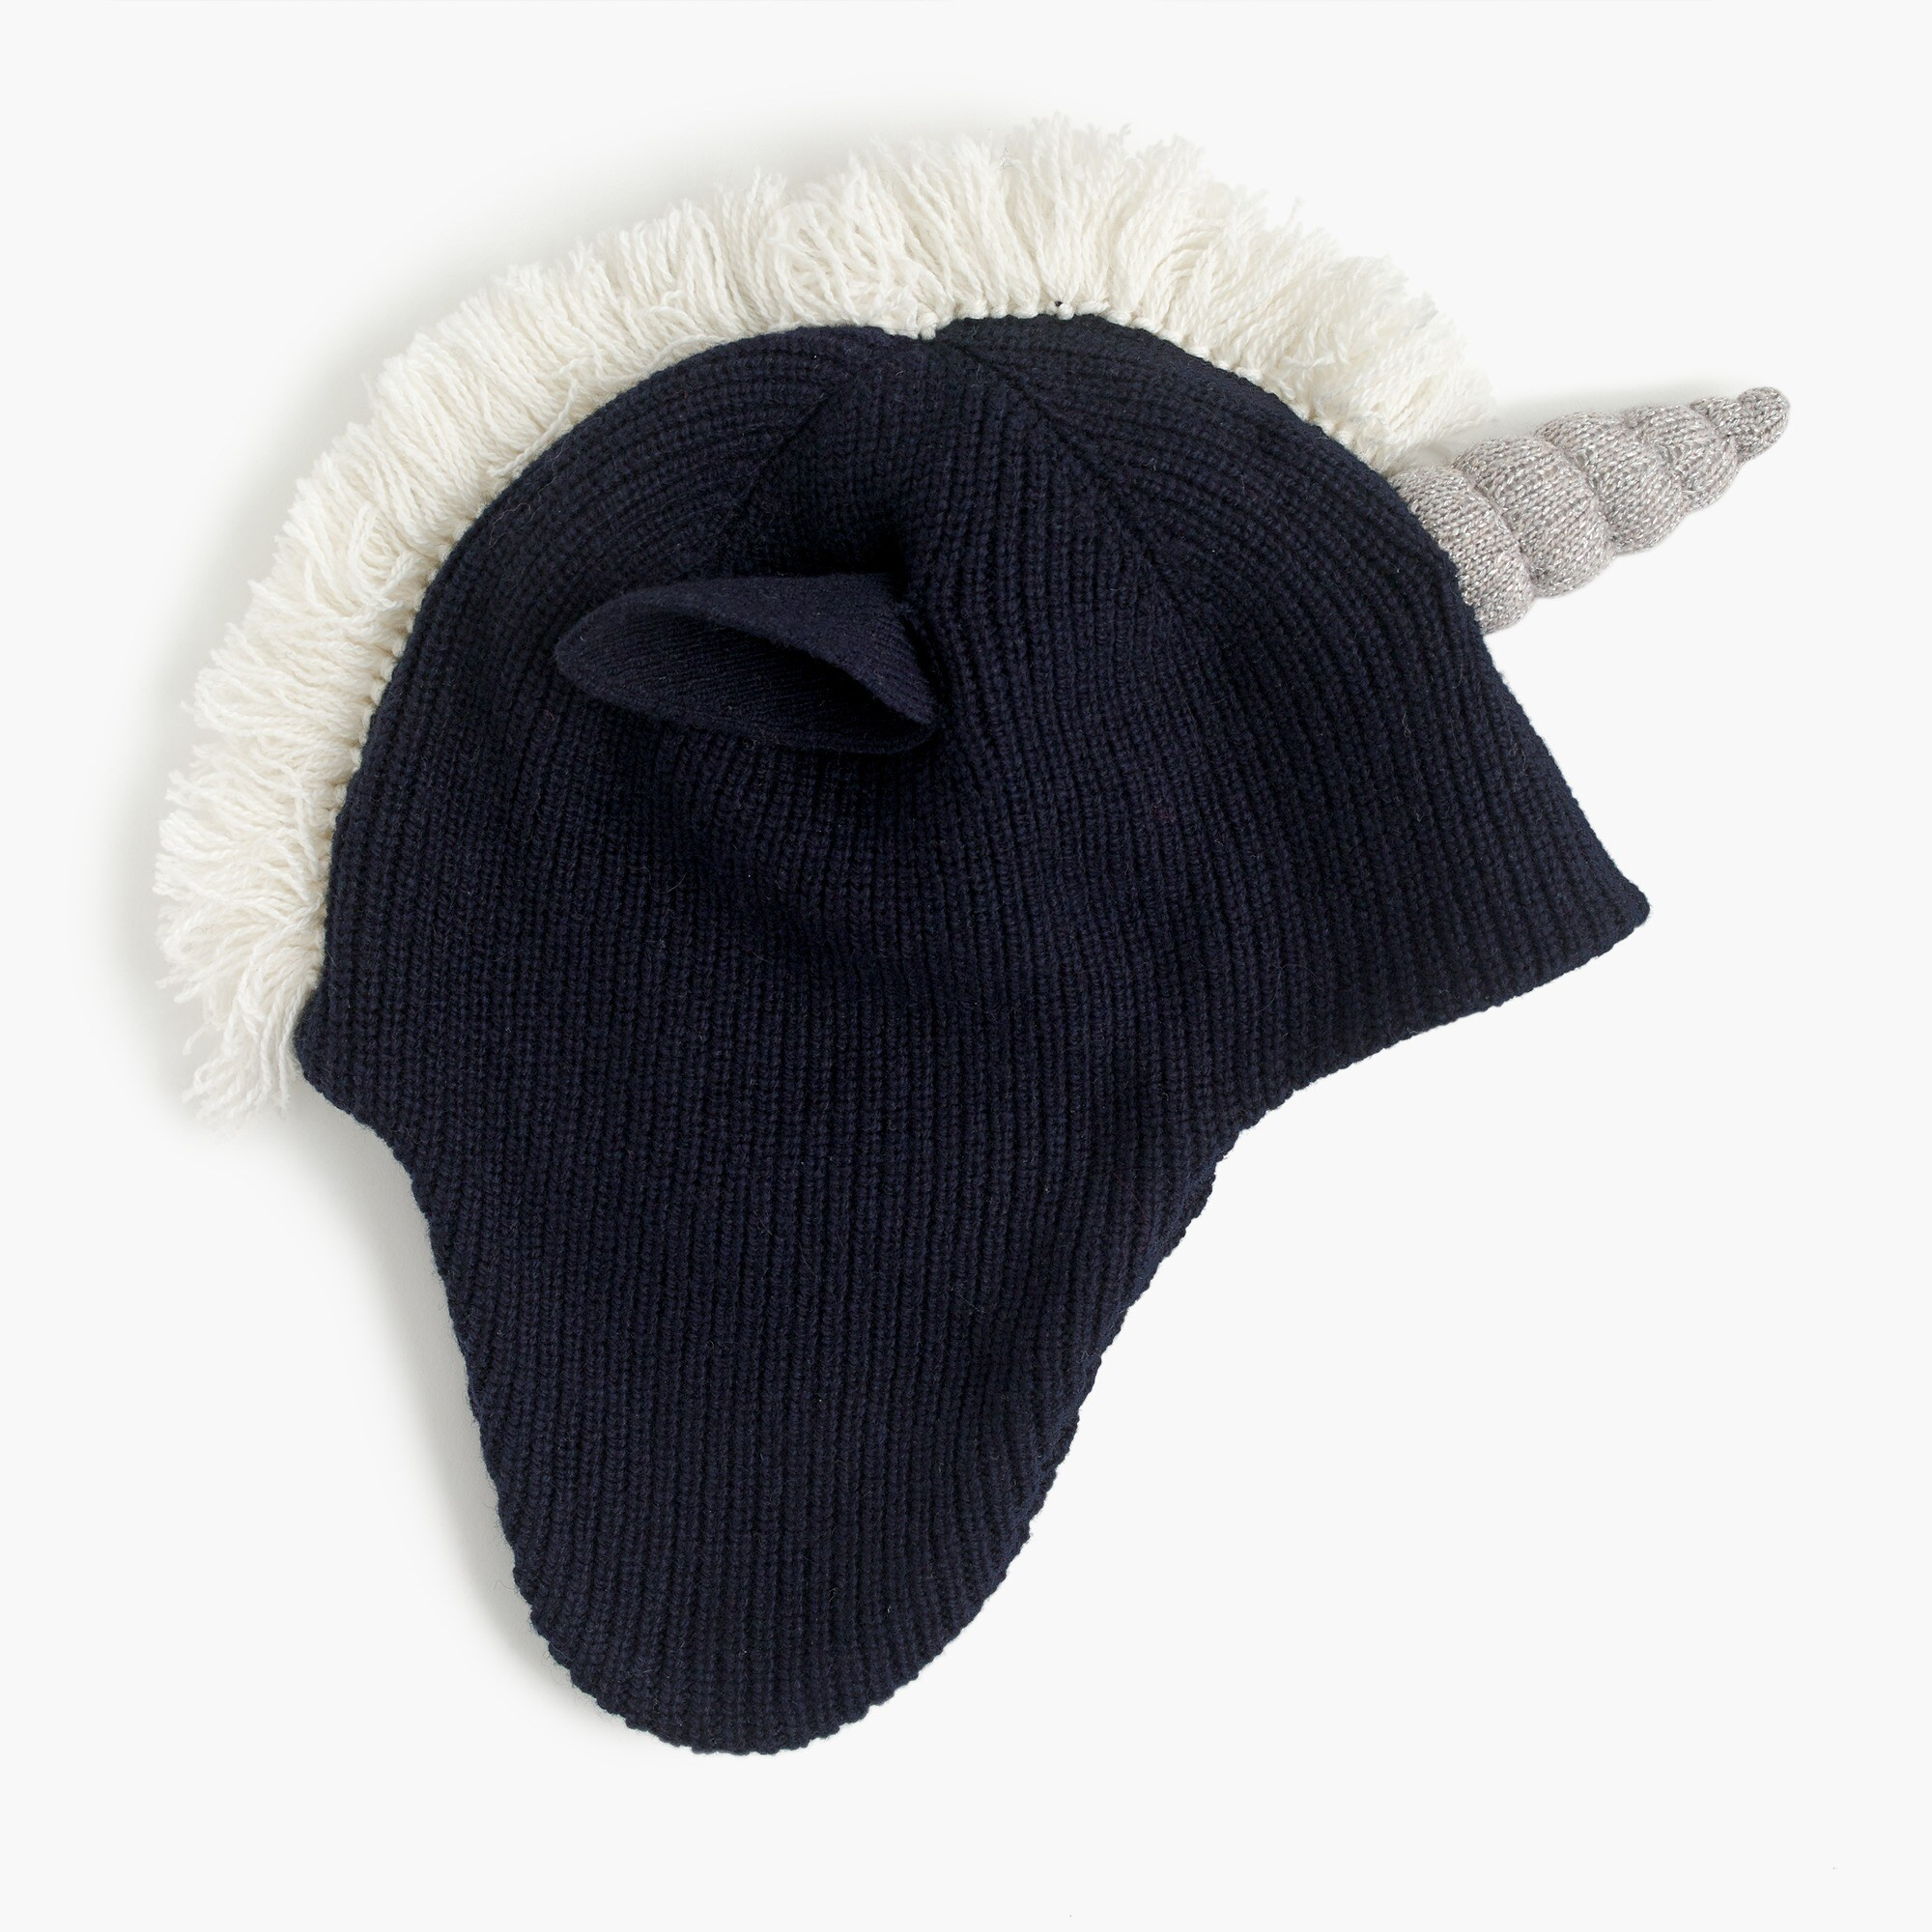 Kids' unicorn trapper hat